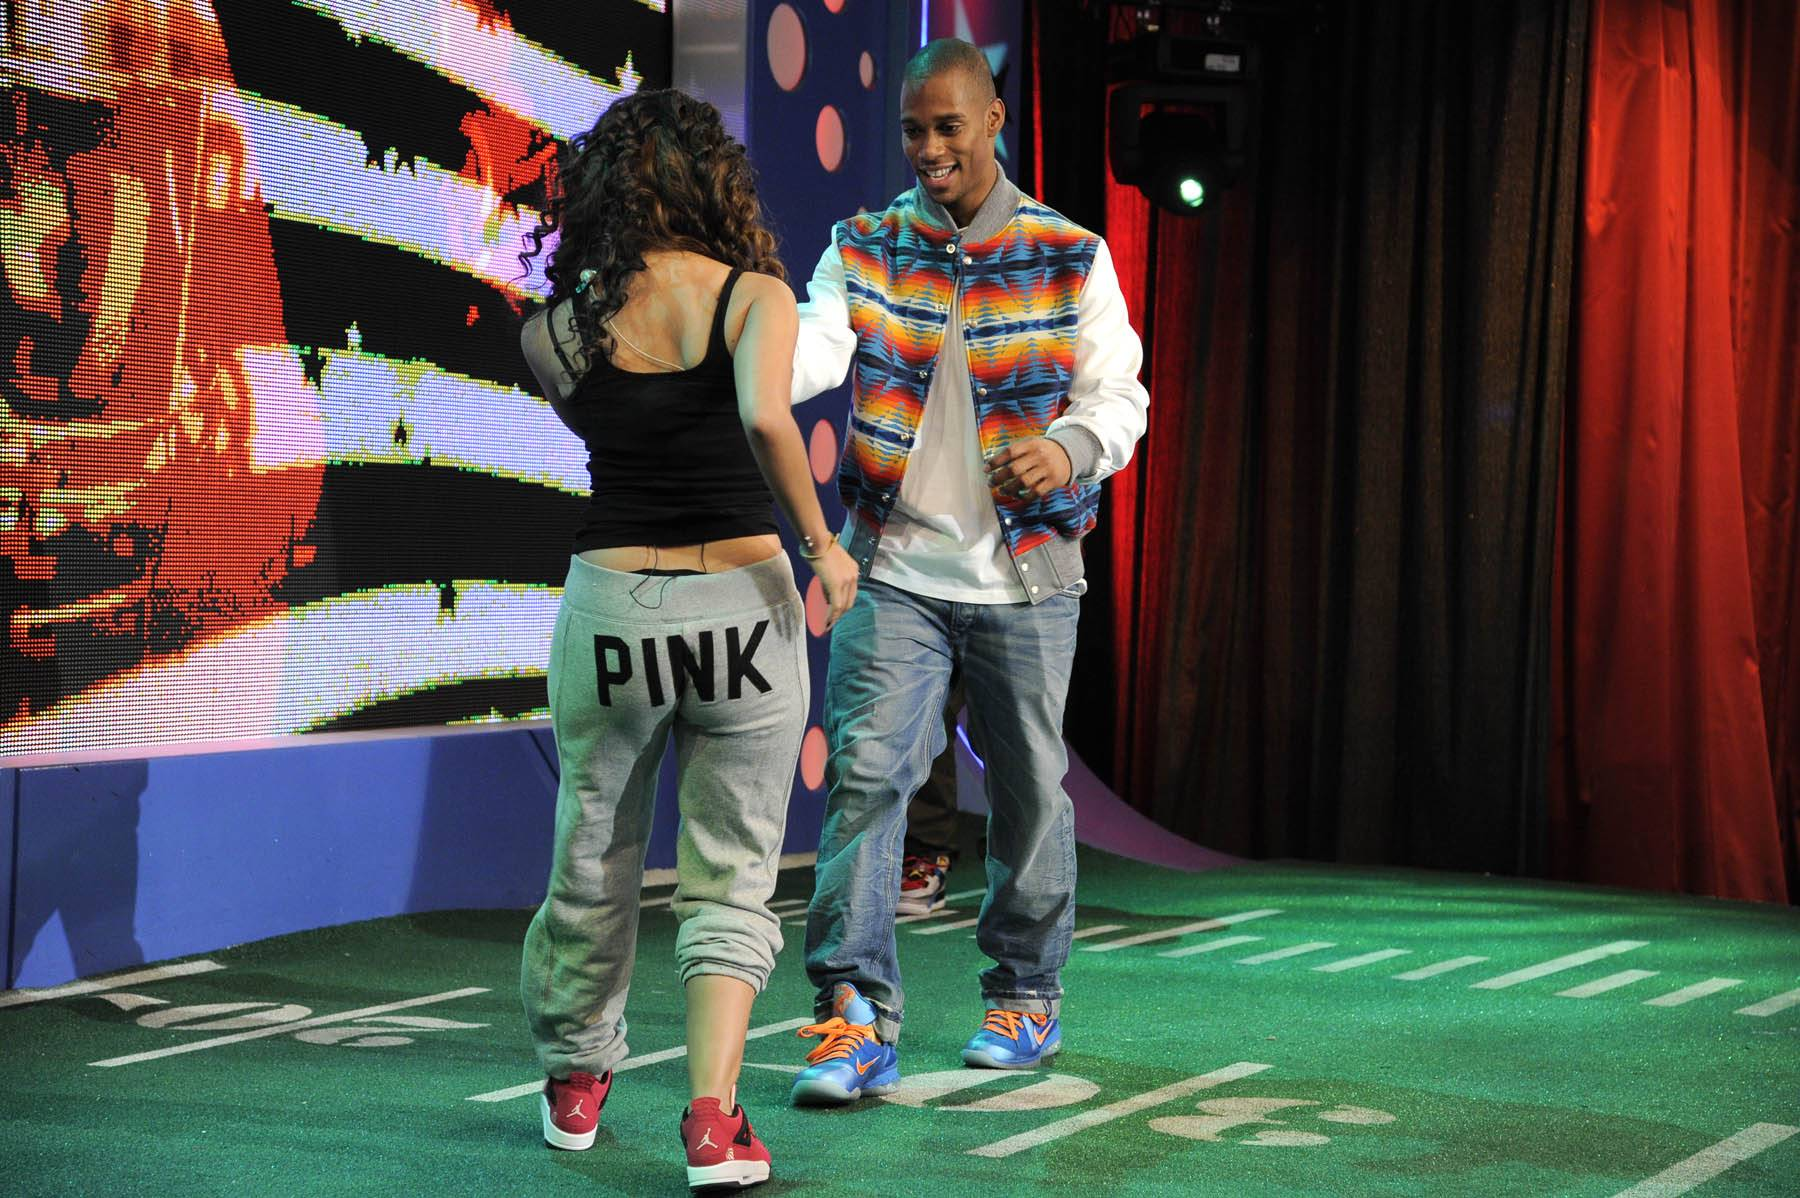 Who Won? - Rocsi Diaz entices Victor Cruz to join her in dancing the salsa at 106 & Park, January 26, 2012. (Photo: John Ricard / BET)